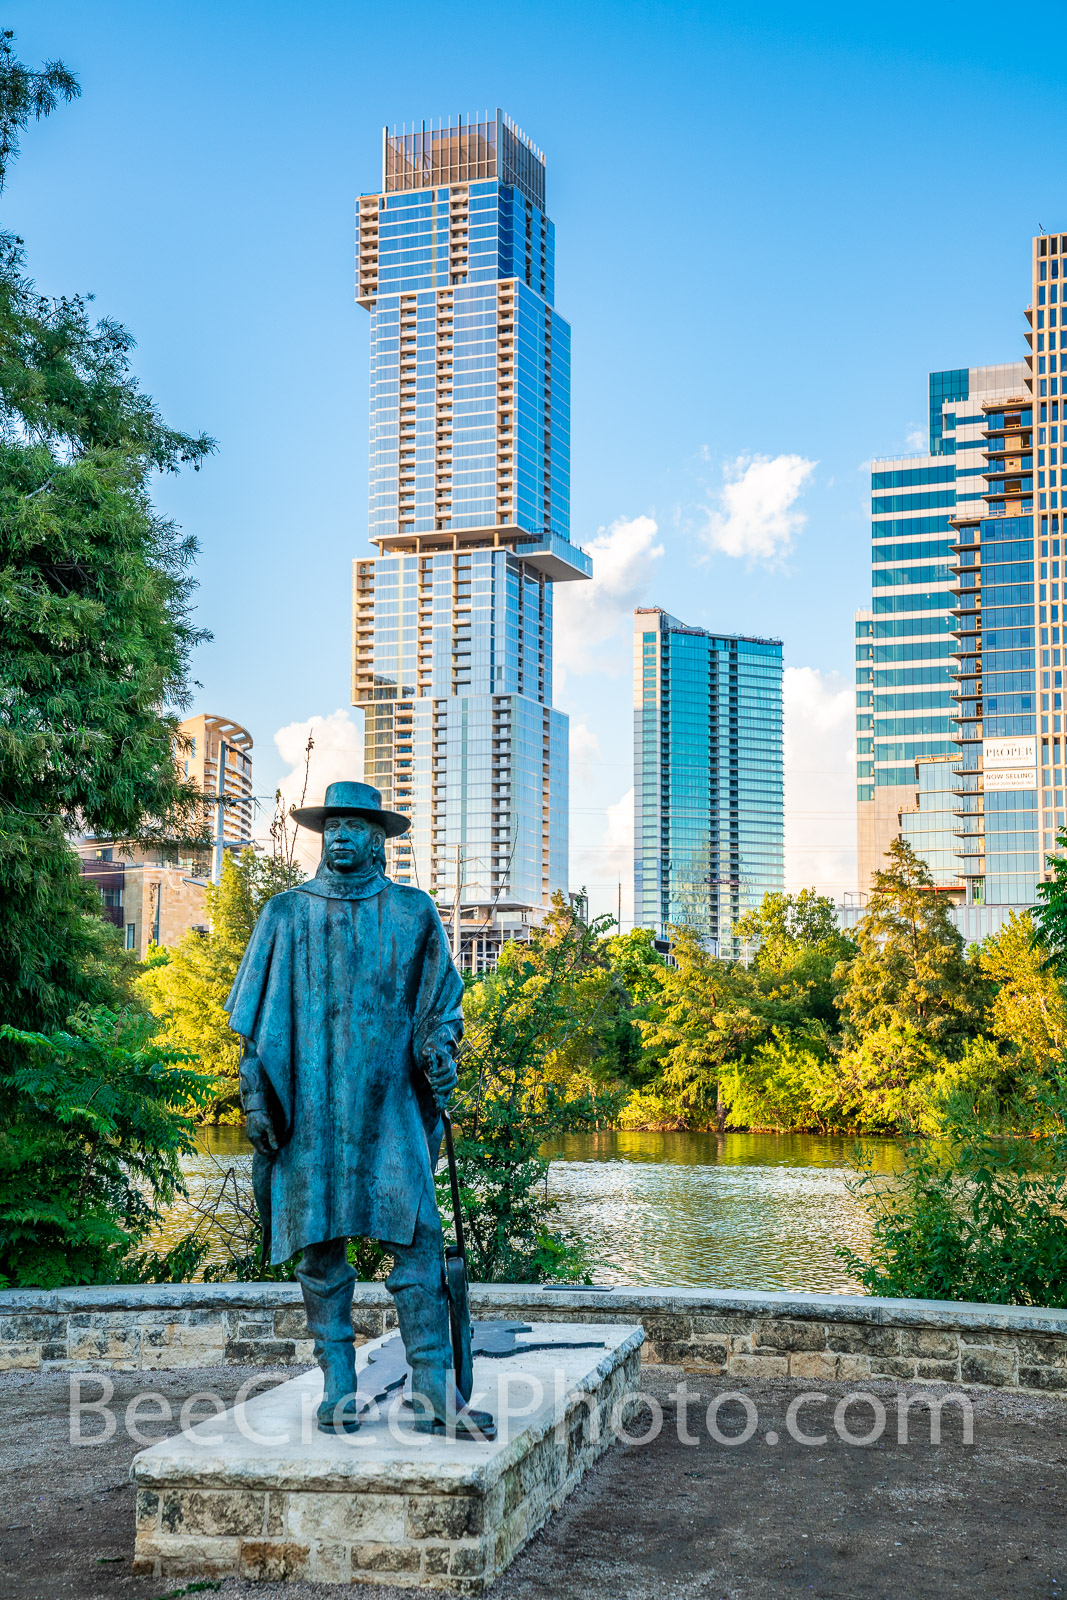 austin, skyline, Independent, Jingle, Stevie Ray Vaughan, statue, bronze, cityscape, downtown, city, vertical, lady bird lake, town lake, downtown, hike and bike trail, , photo